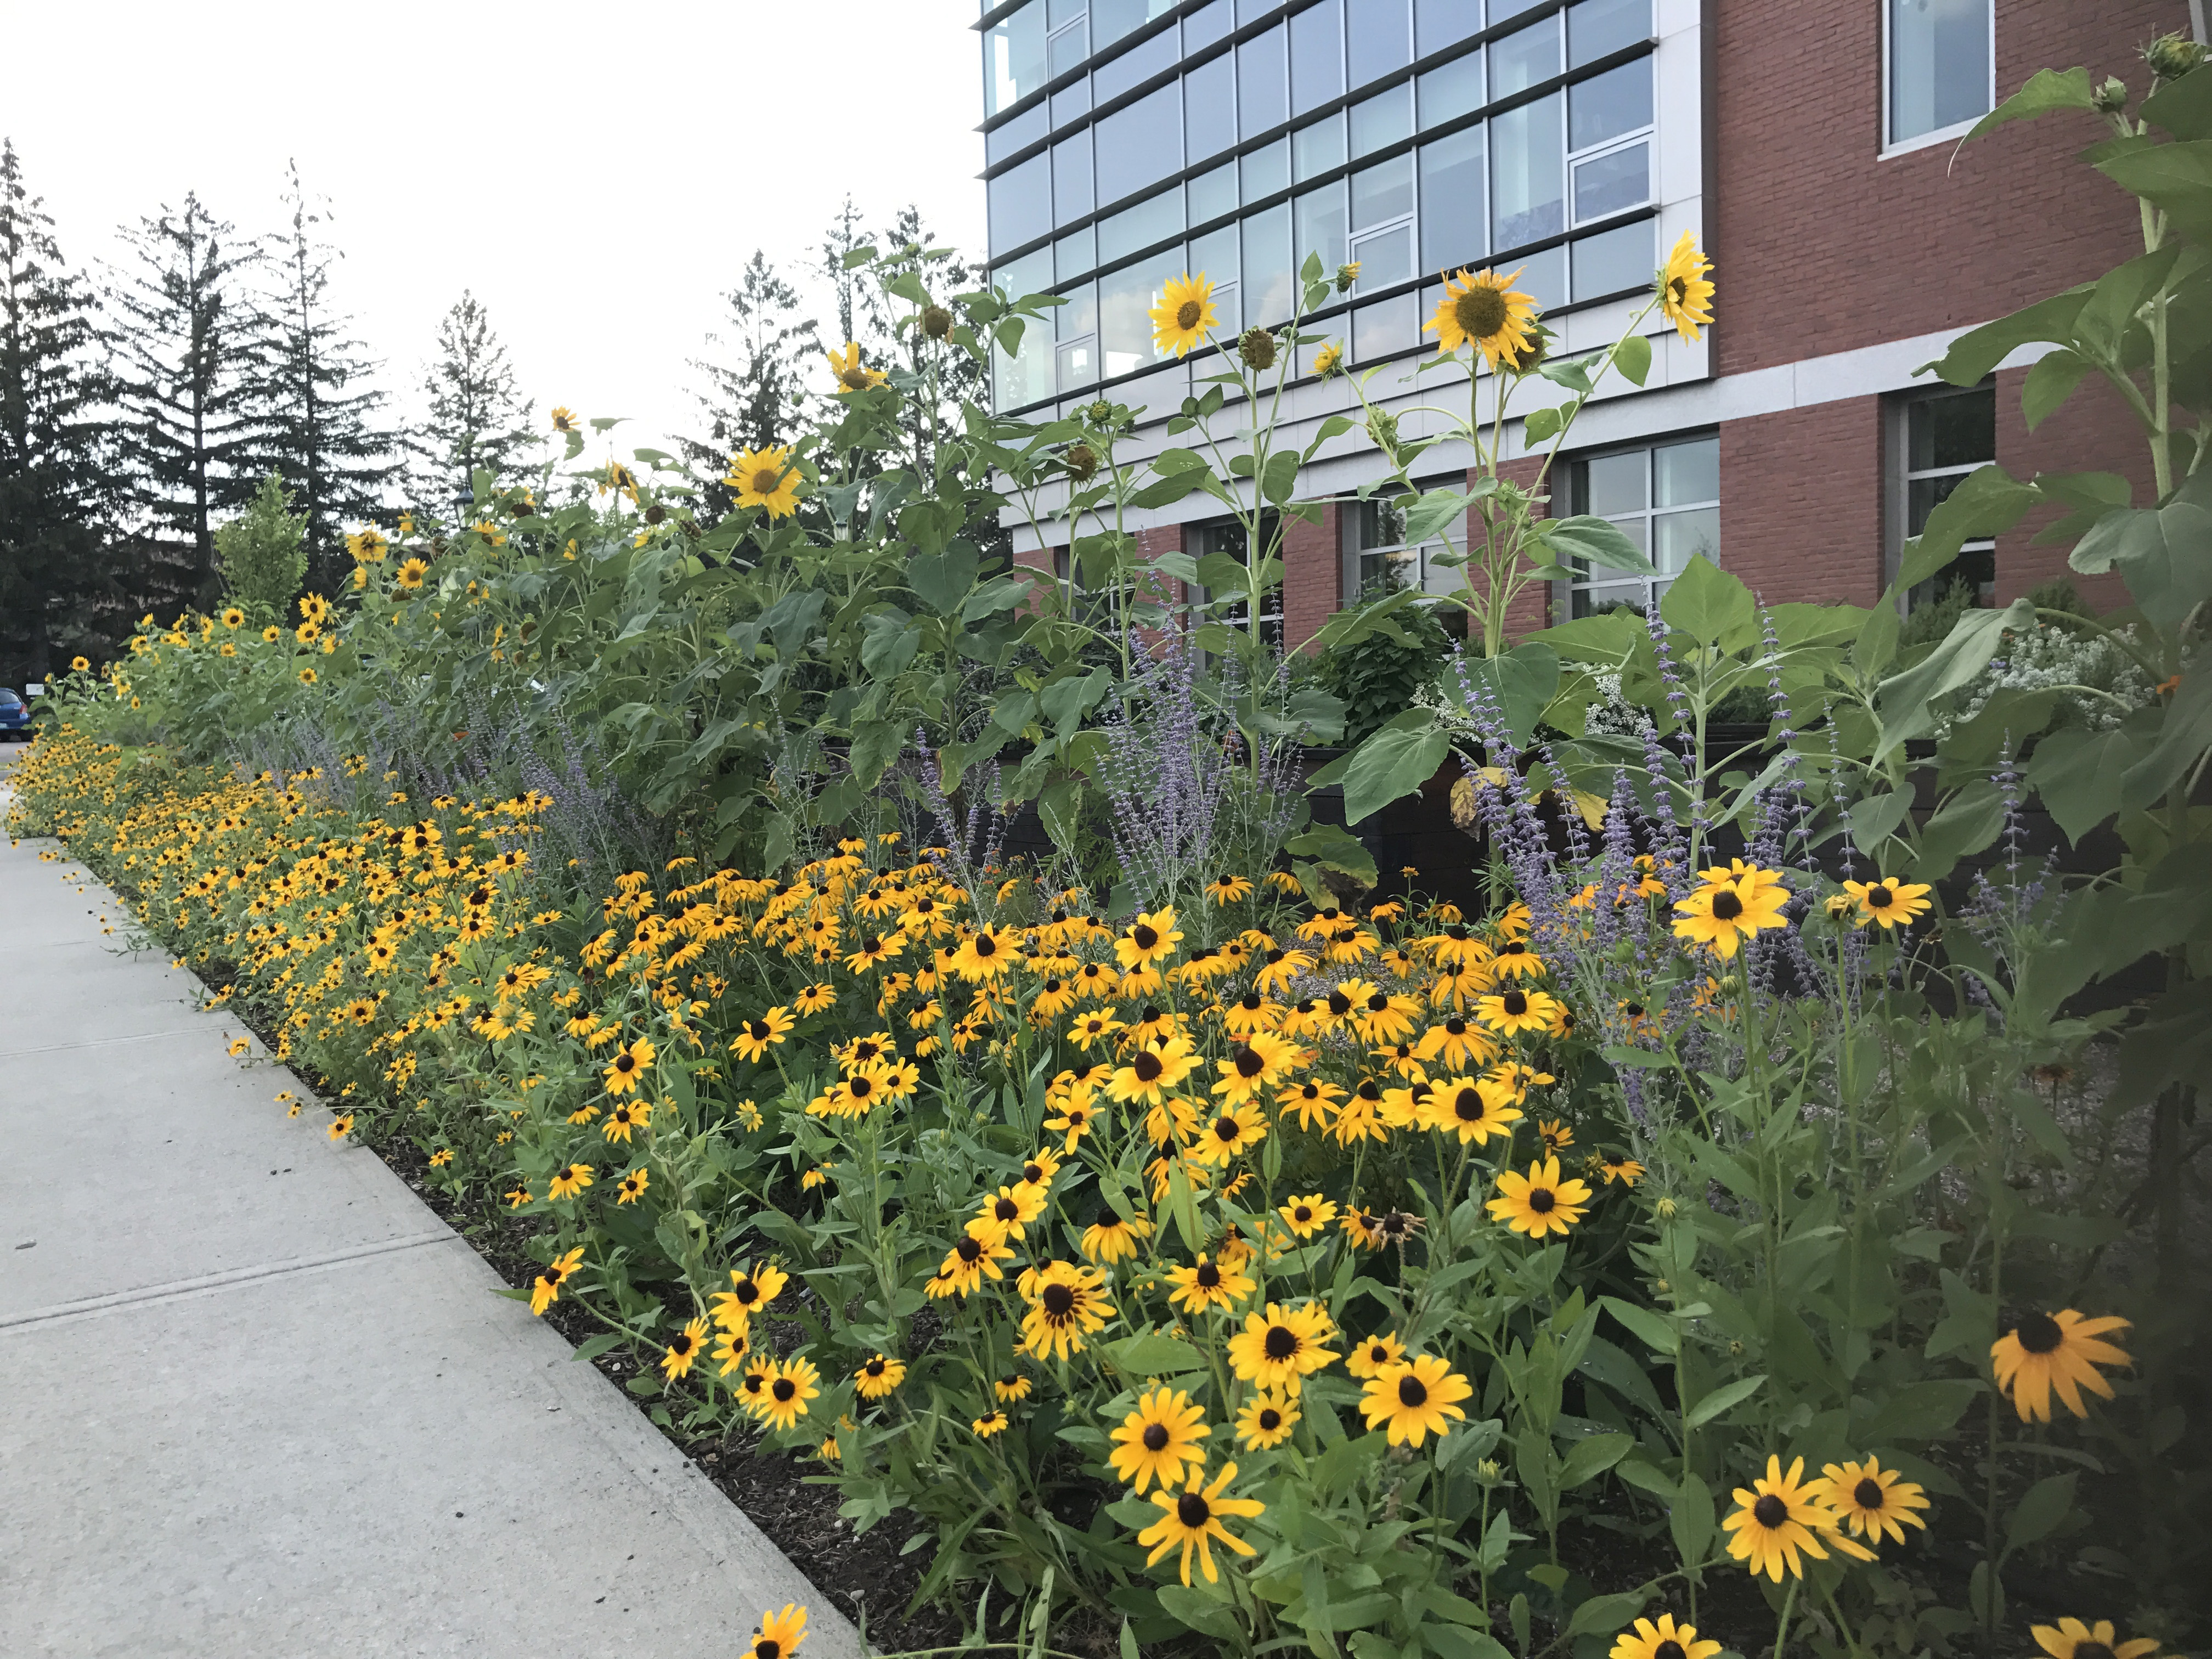 A stand of sunflowers dominates this streetside flower border planted on the campus of University of Vermont.